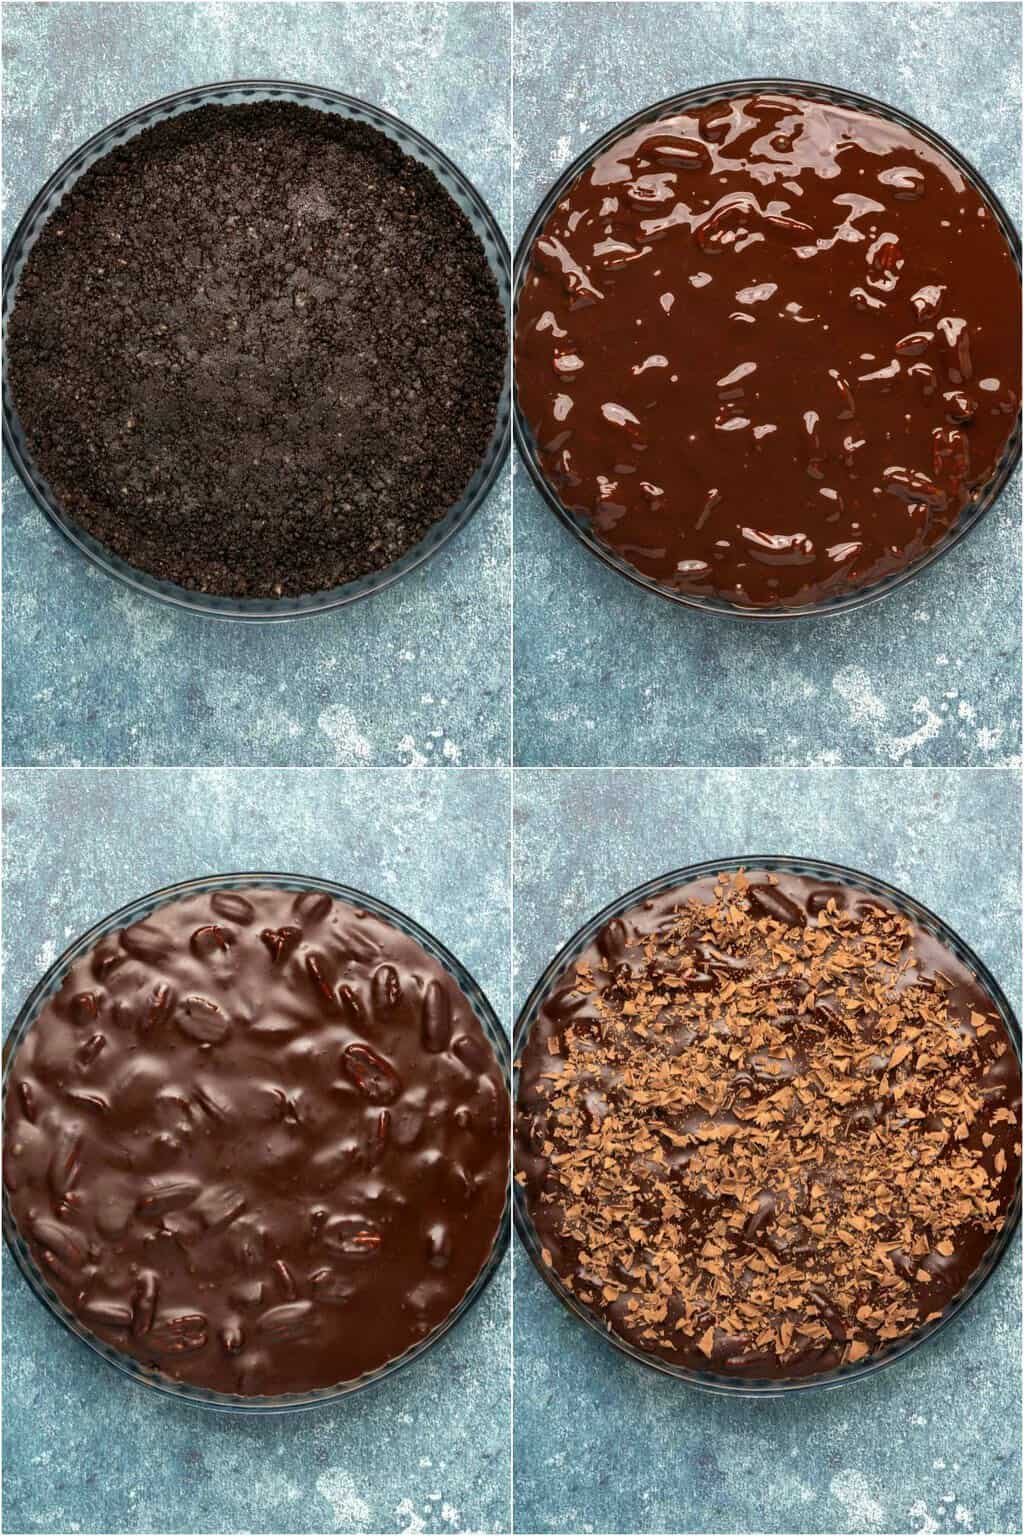 Step by step process photo collage of assembling a vegan chocolate tart.